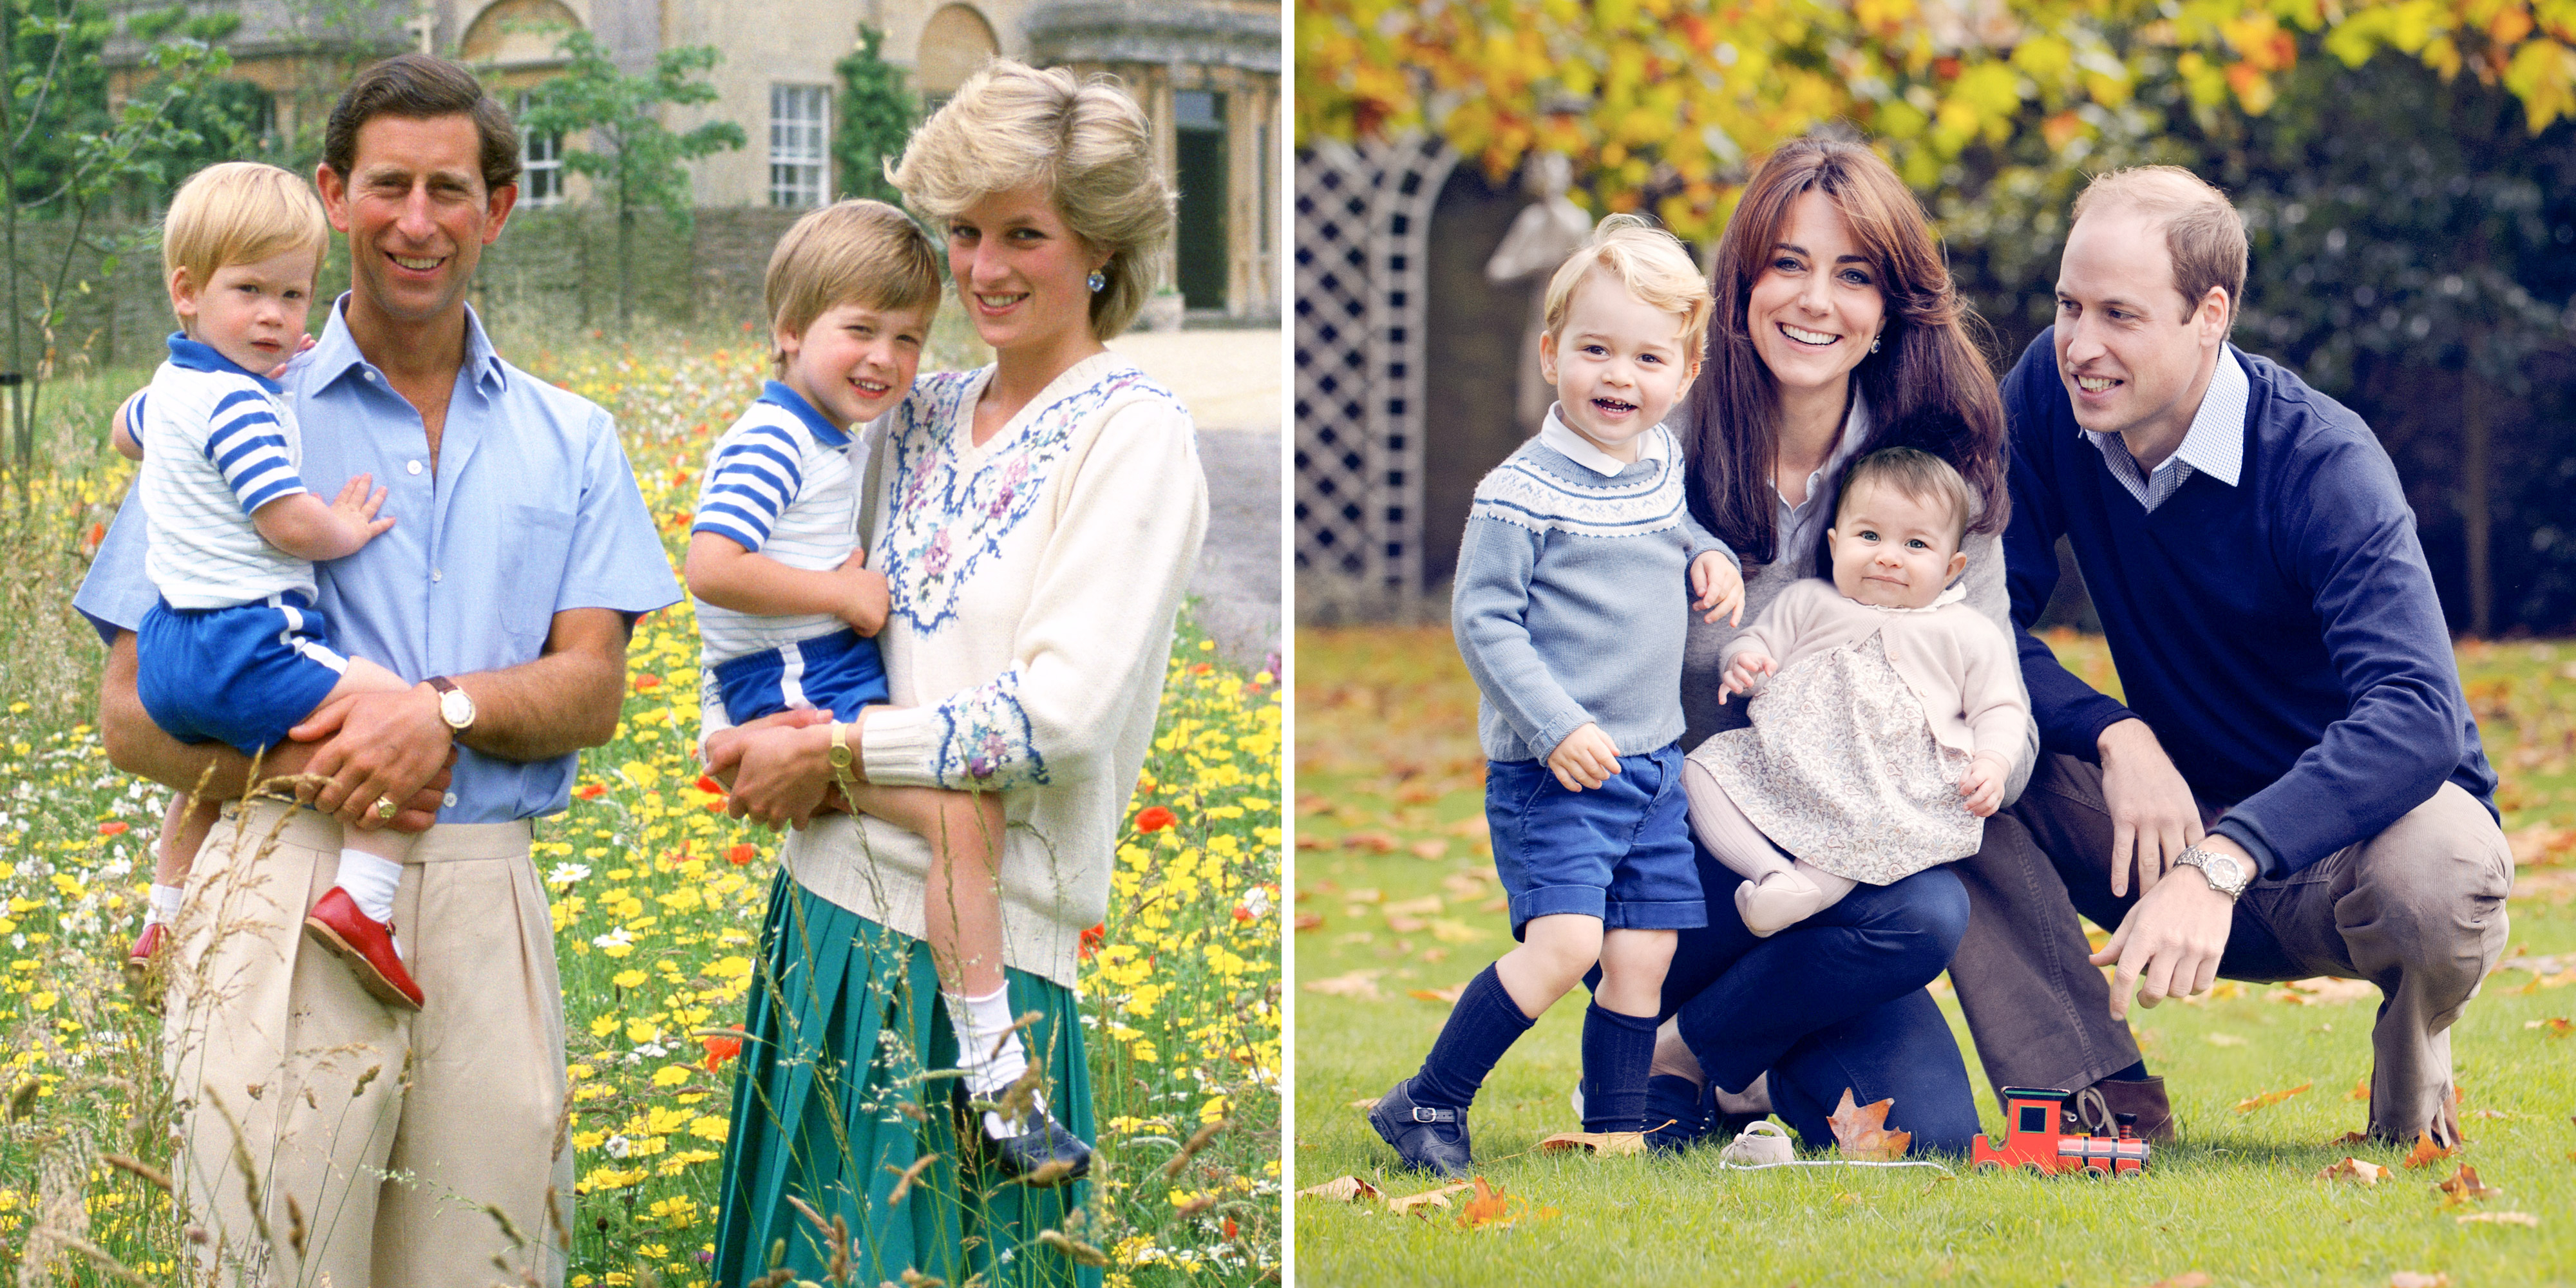 Compare The 1986 Royal Family Photo Of Prince Charles And Princess Diana With Their Sons To New 2015 Portrait William His Wife Kate